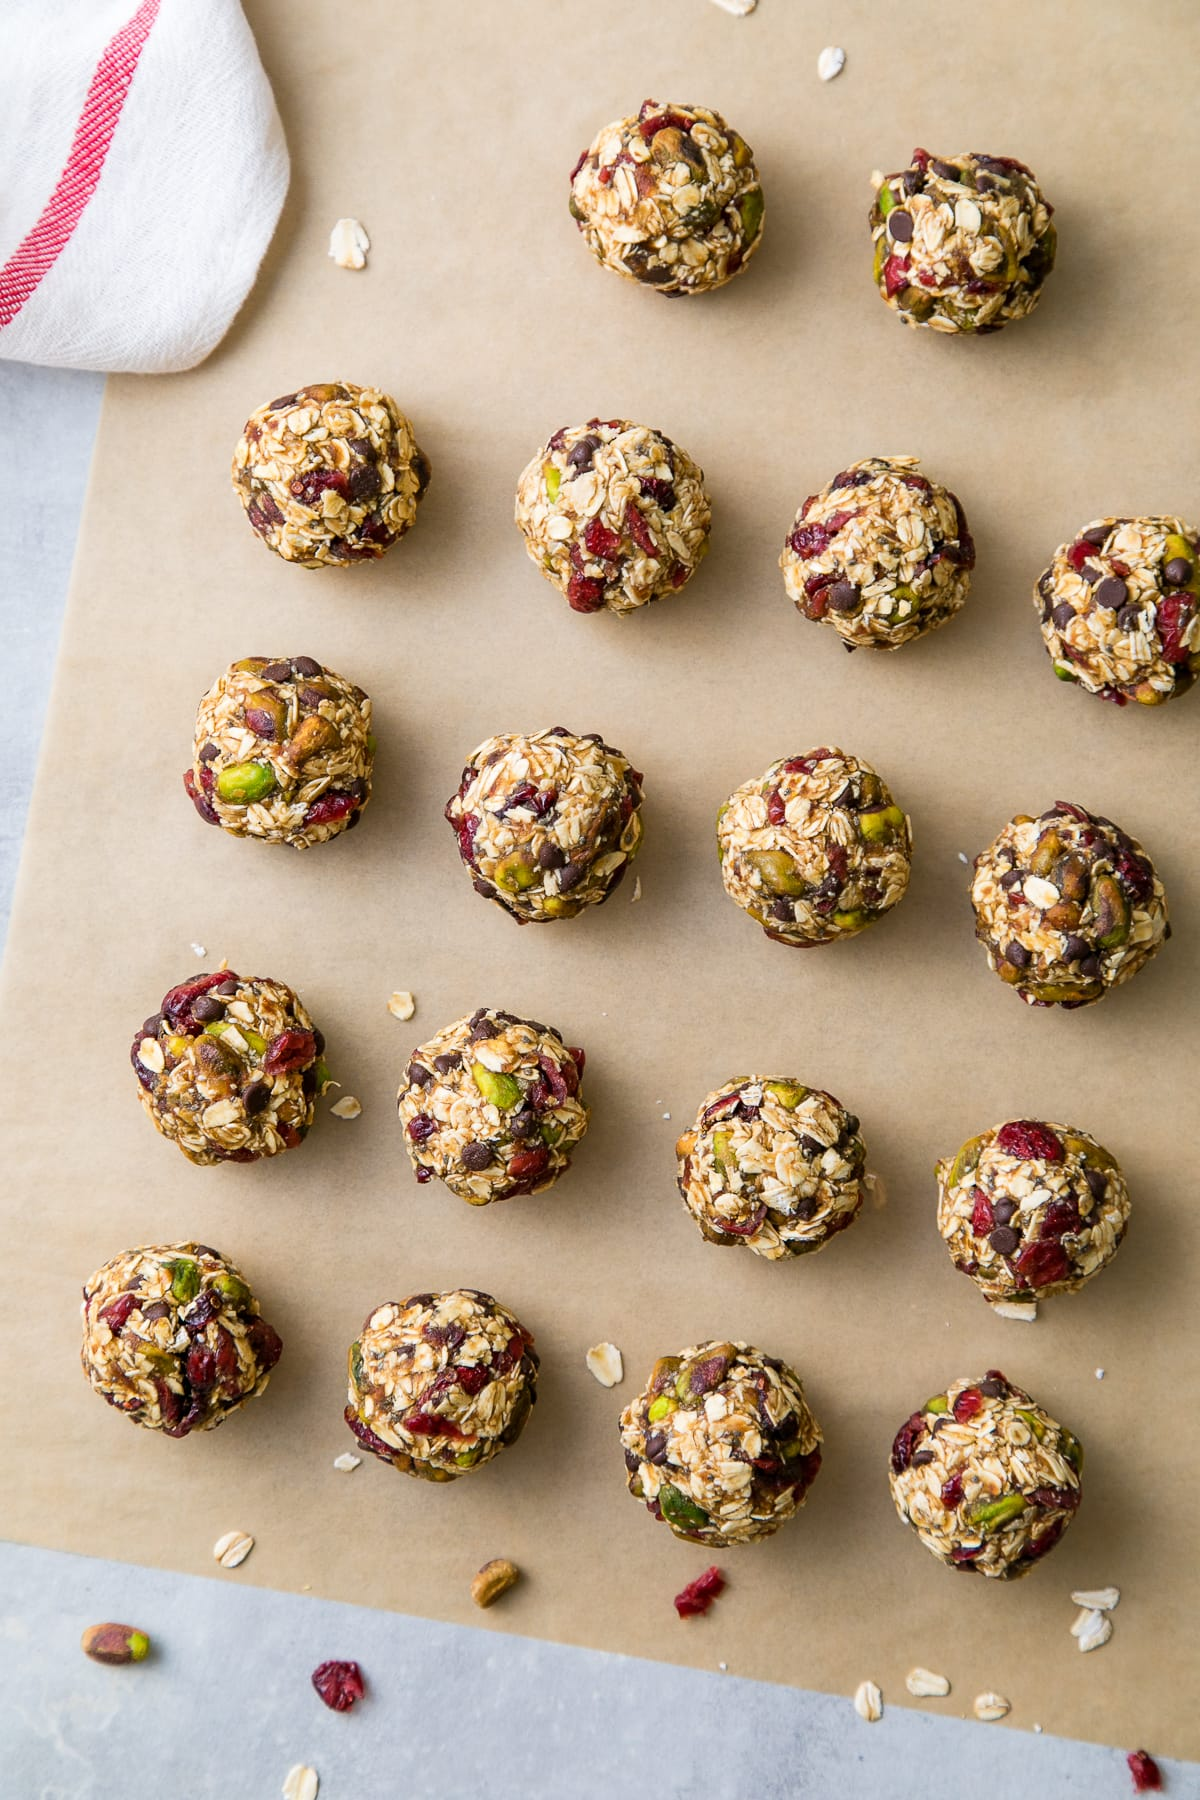 top down view of freshly rolled oatmeal energy bites with pistachios and cranberries.